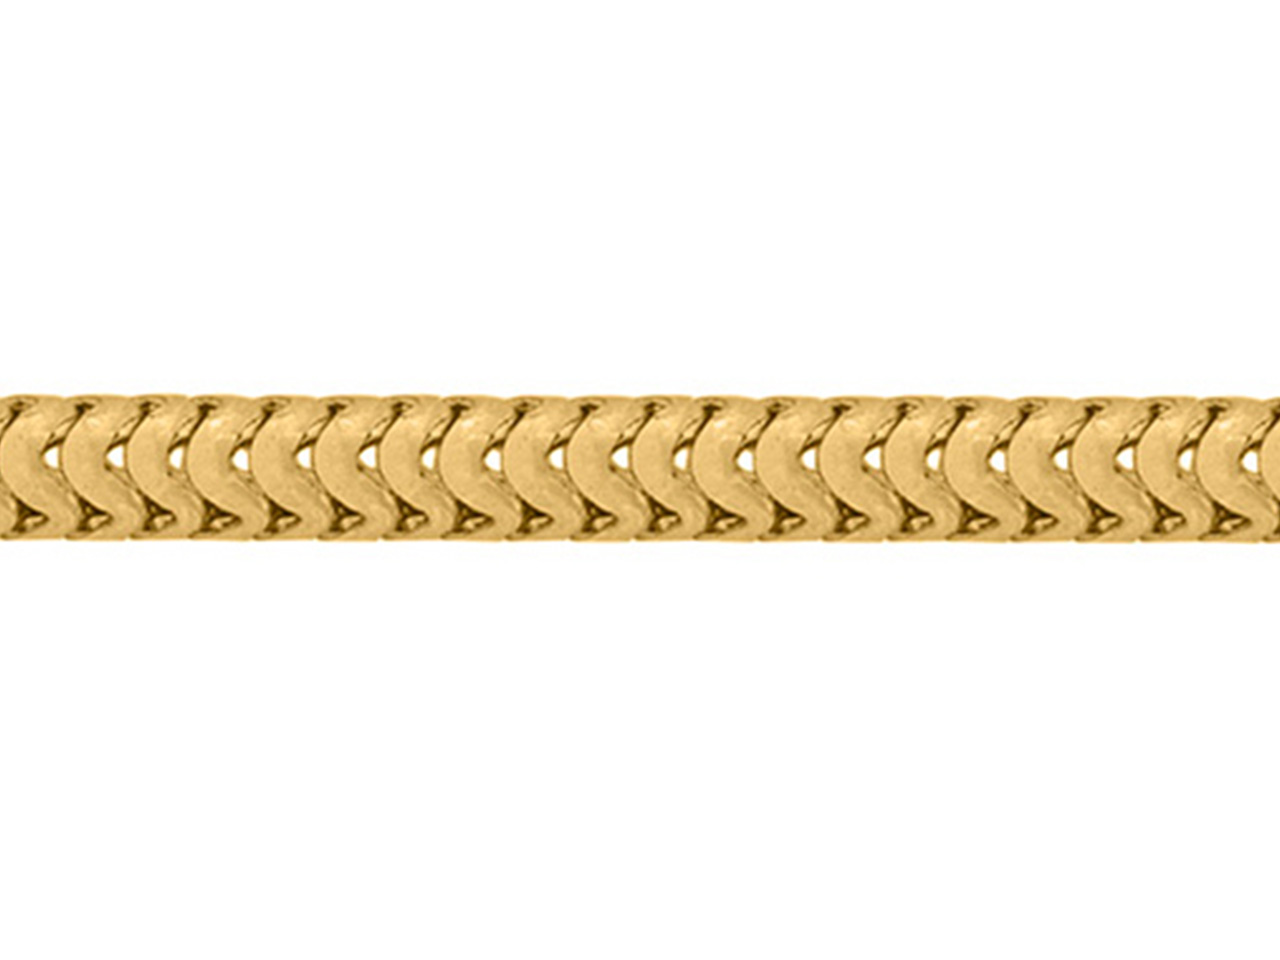 Chaine Serpent ronde, 1,2 mm, Or jaune 18k. Réf. 00152